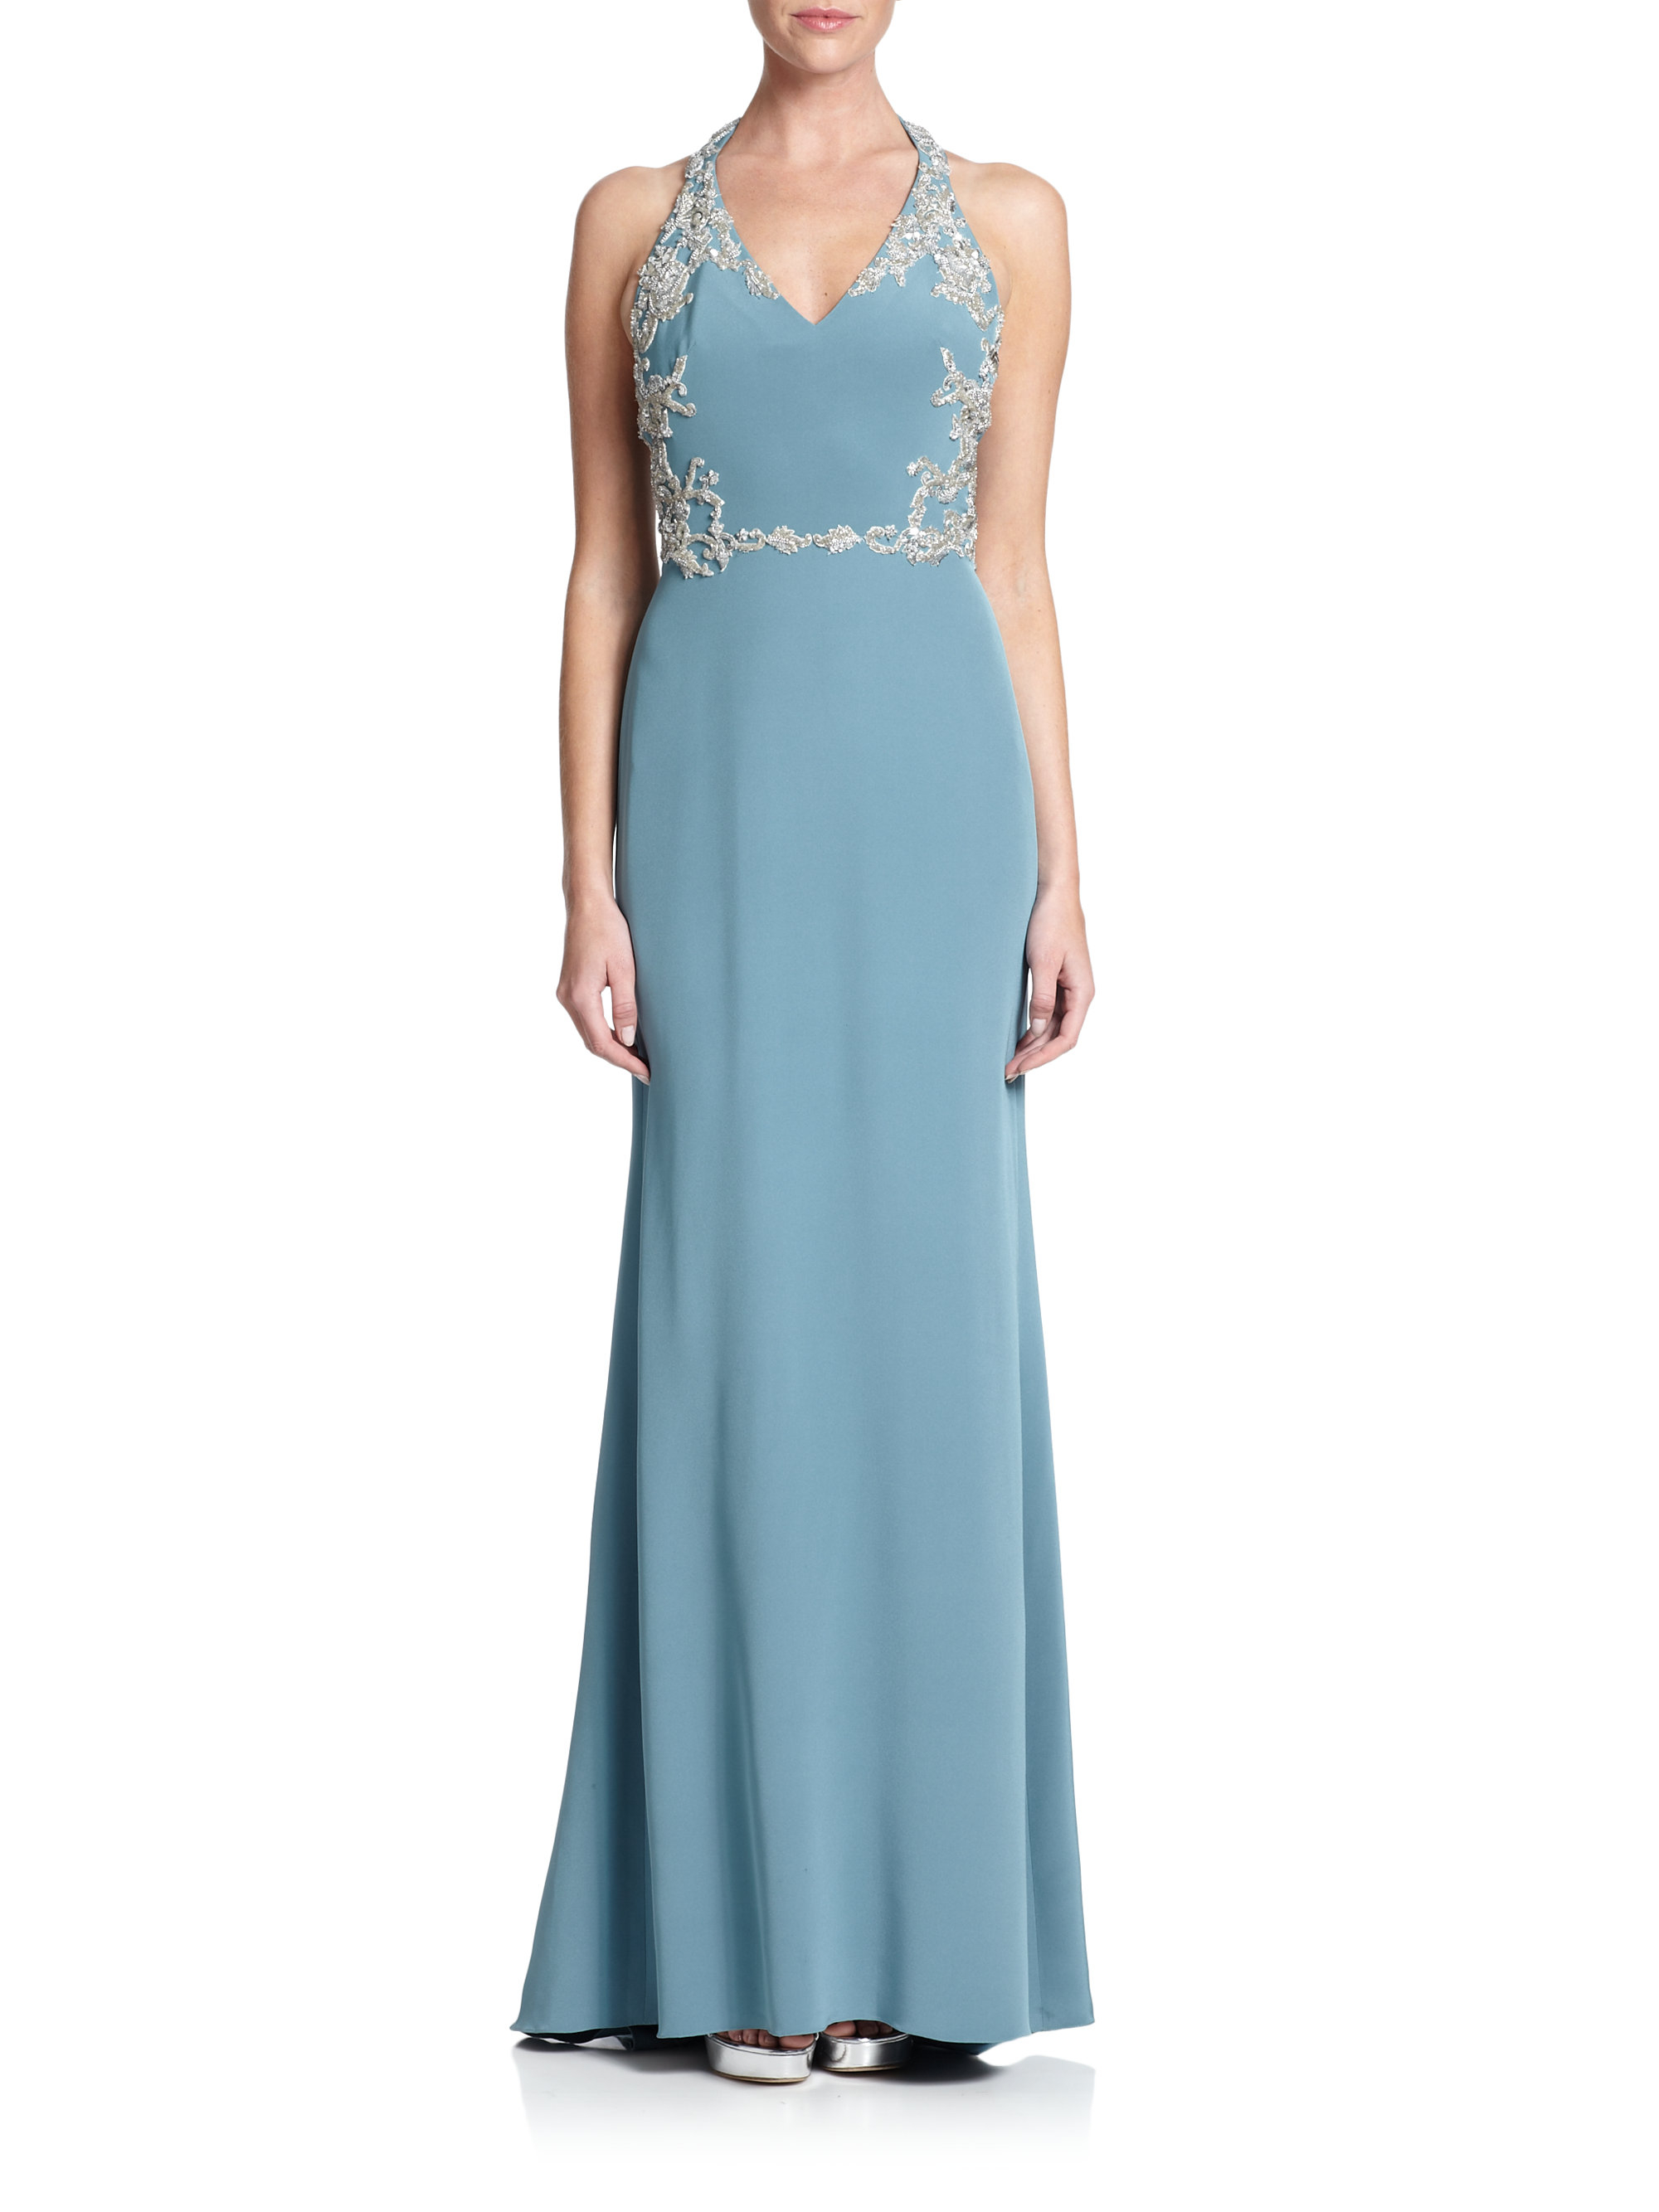 Lyst - Notte By Marchesa Embellished Silk Halter Gown in Green